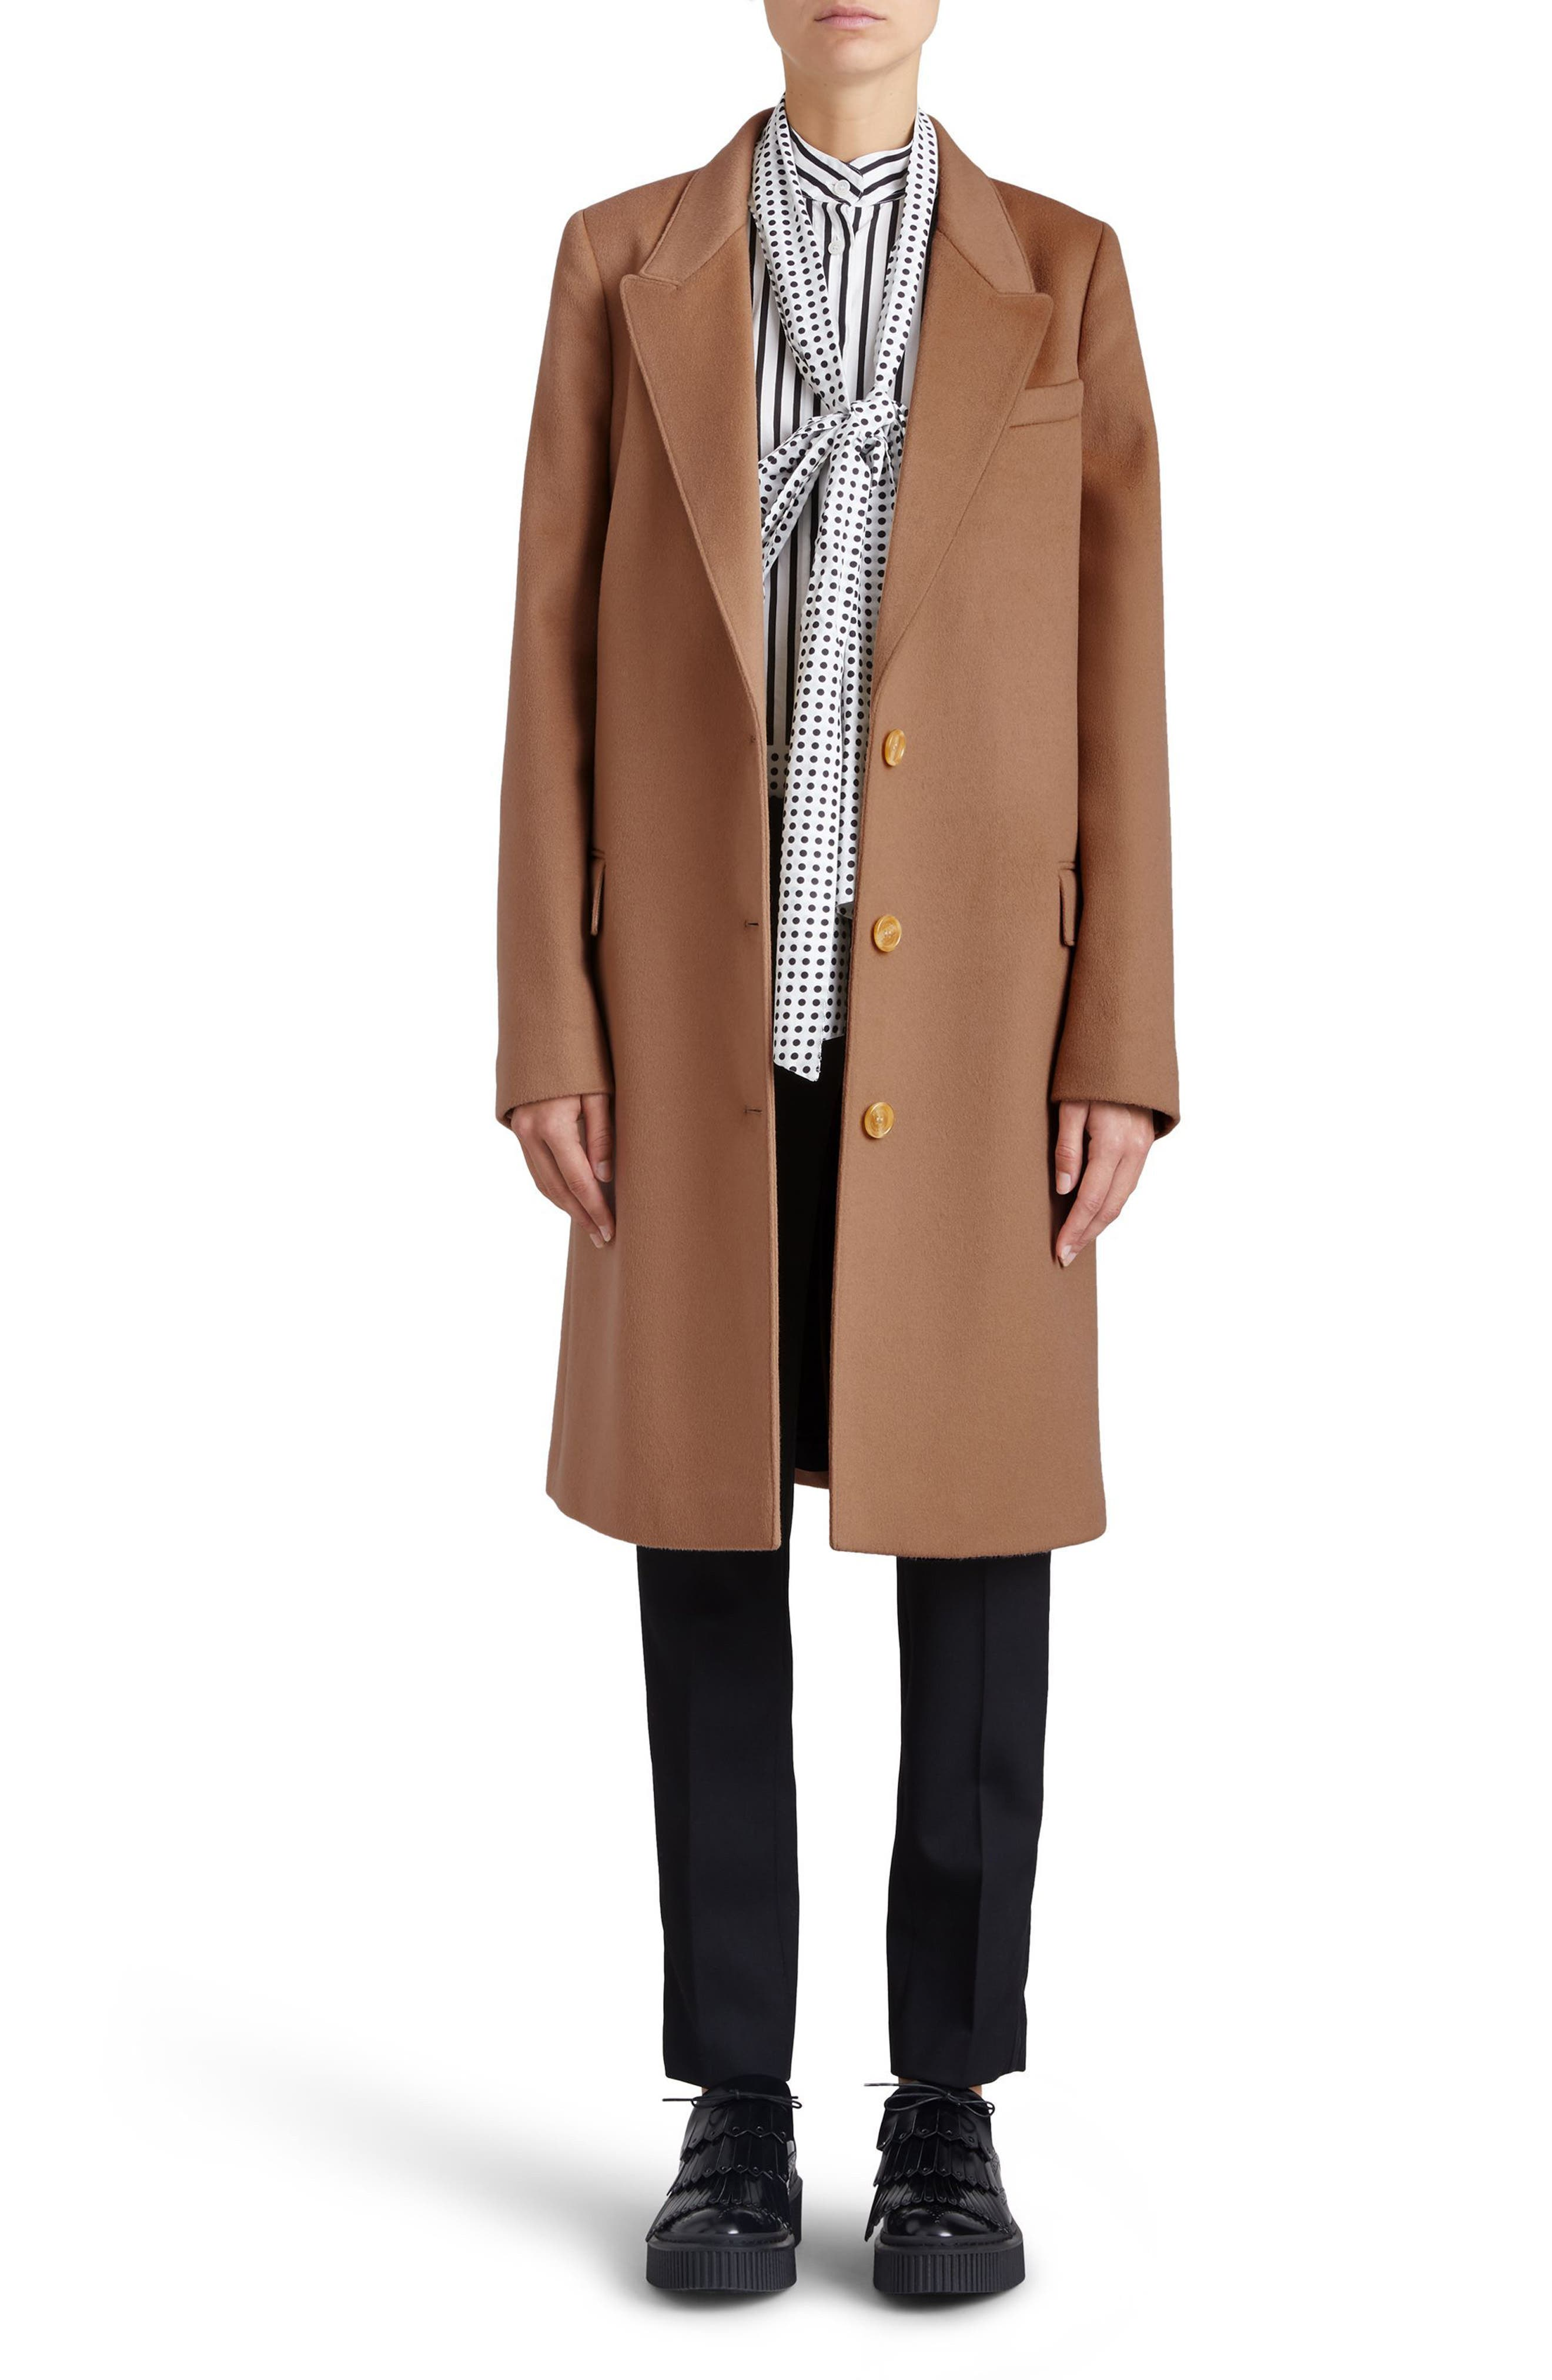 Fellhurst Wool & Cashmere Coat,                             Alternate thumbnail 6, color,                             Camel